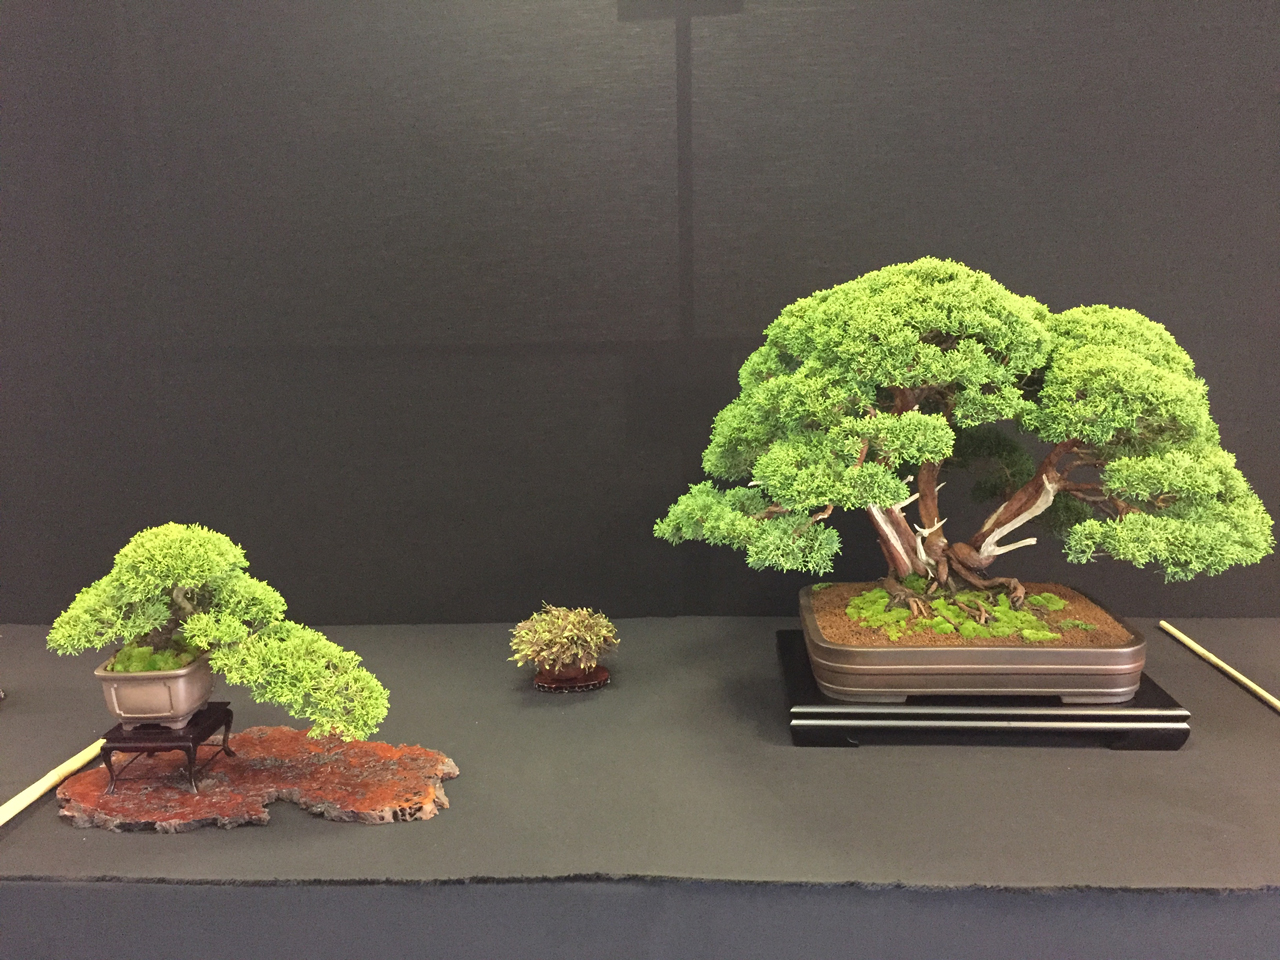 Show presentaion of Junipers and accent plant